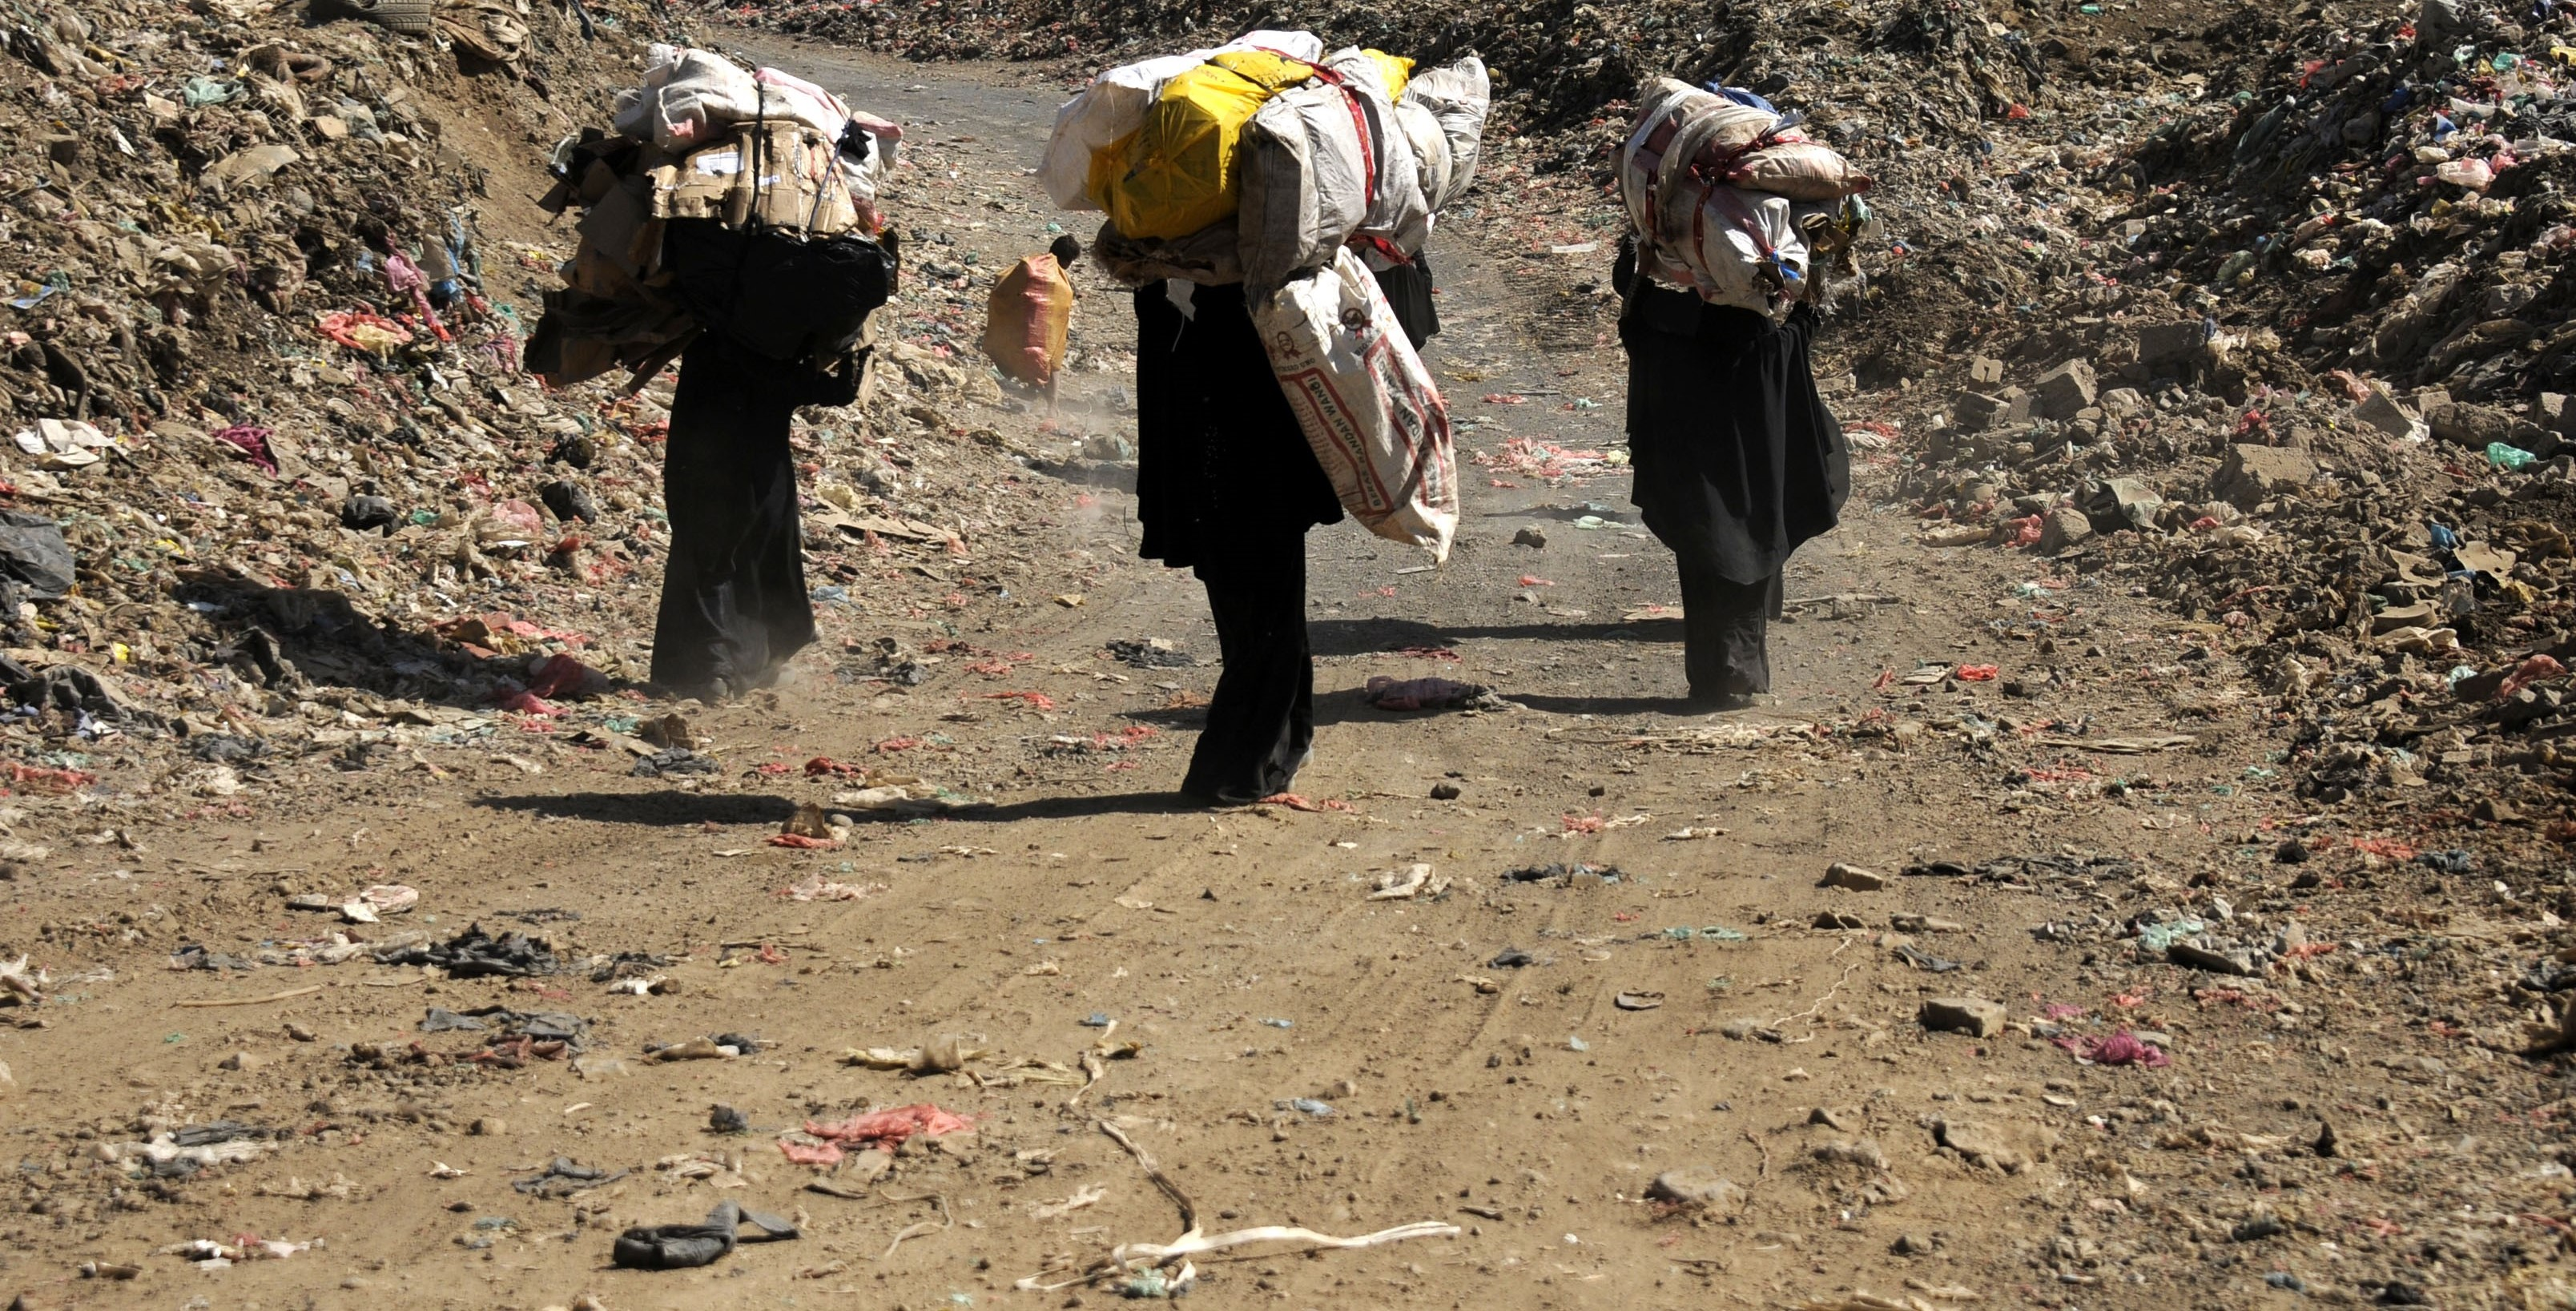 Yemeni people collect rubbish for recycling from a garbage dump in Sana'a, Yemen, March 2017 (Photo: Getty Images/Anadolu Agency)